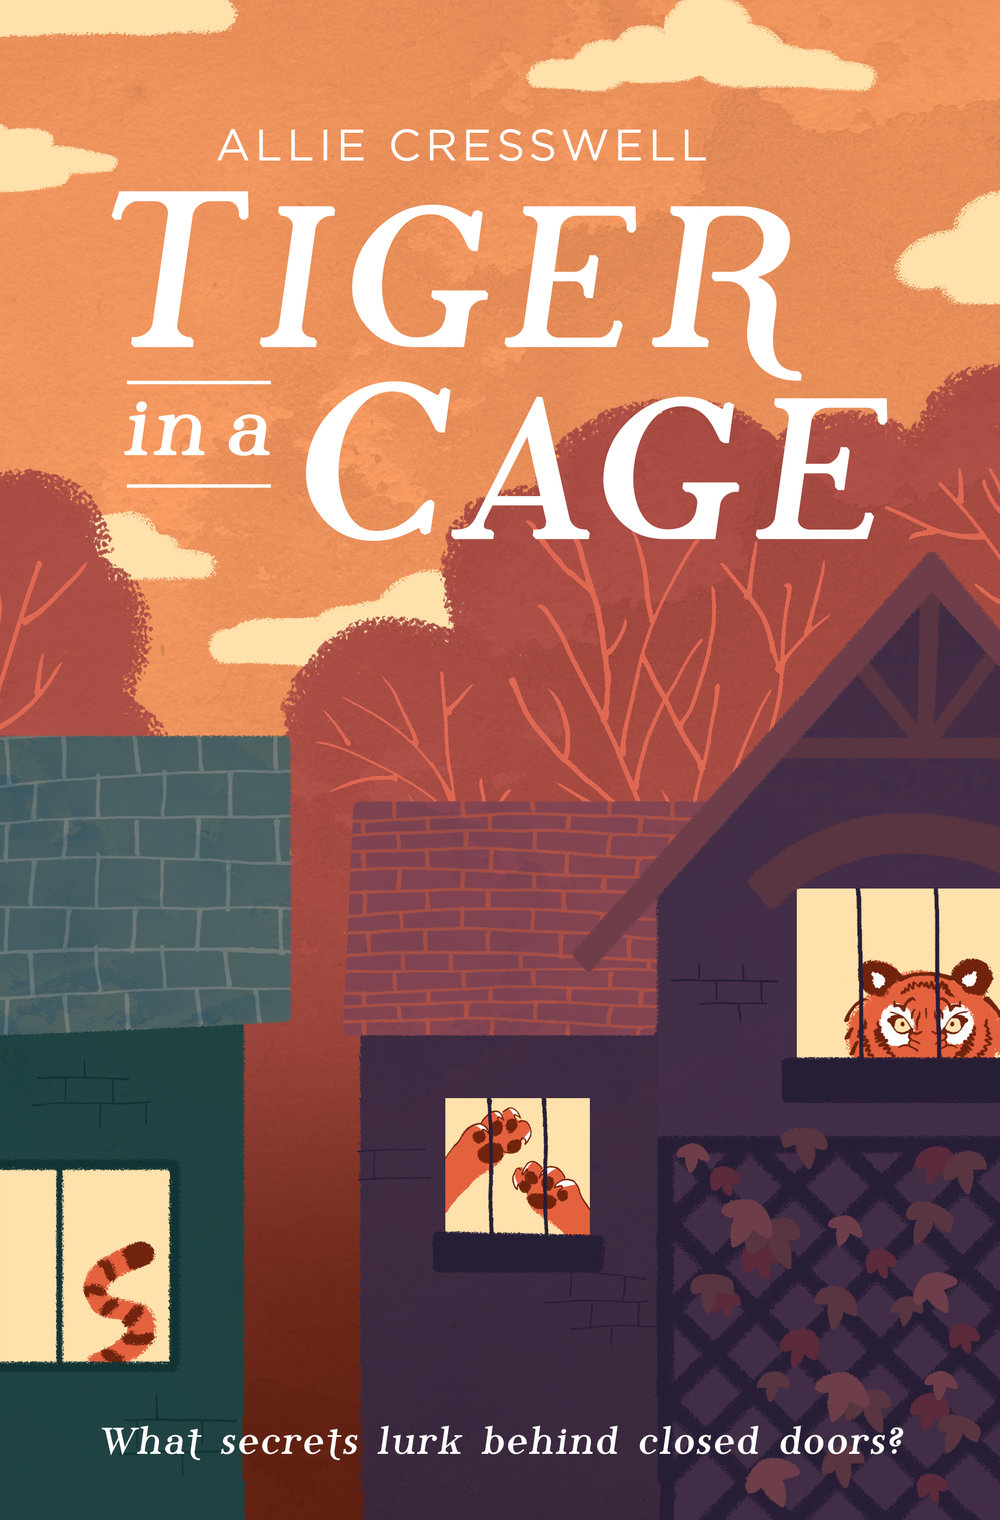 Tiger in a cage by Allie Cresswell allie-cresswell.com